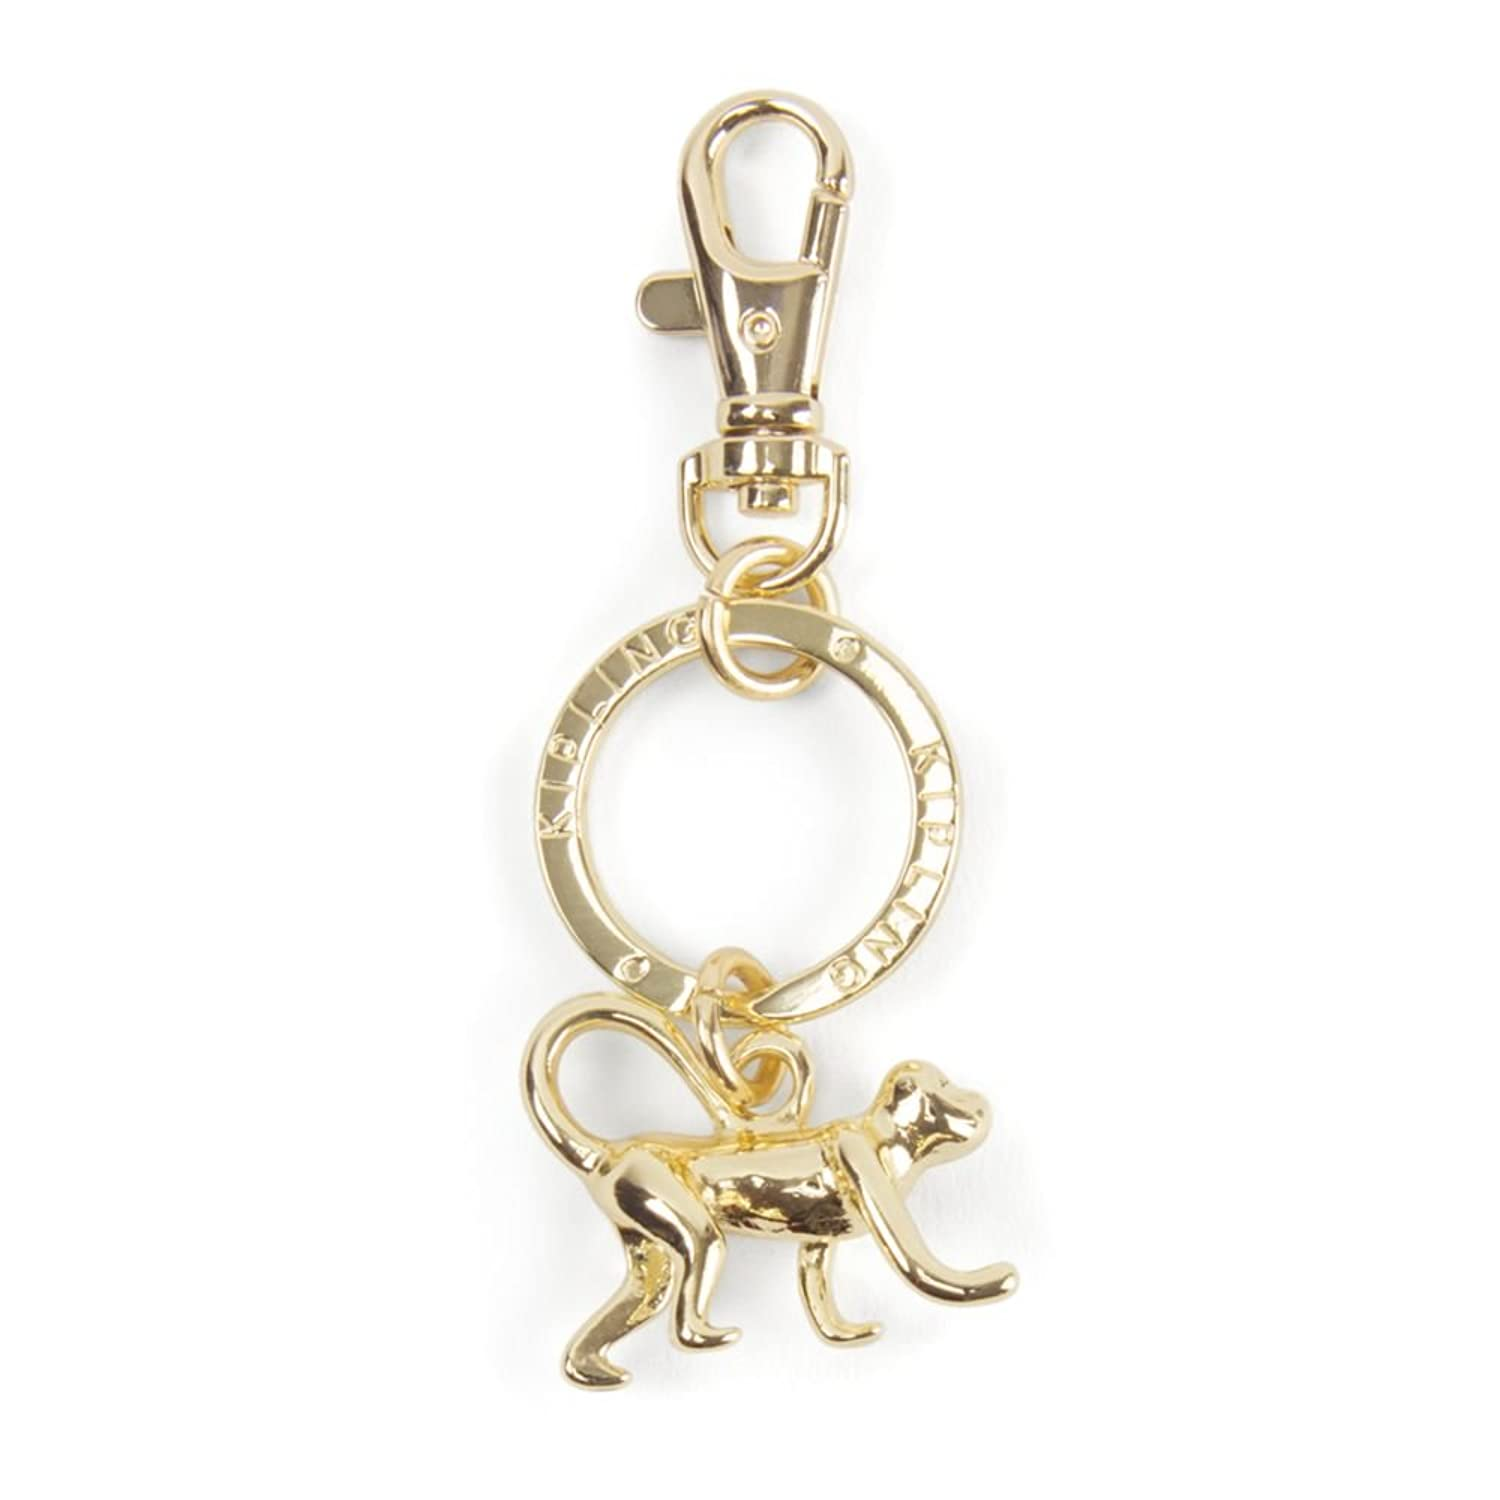 Kipling Women's Crawling Monkey Key Charm